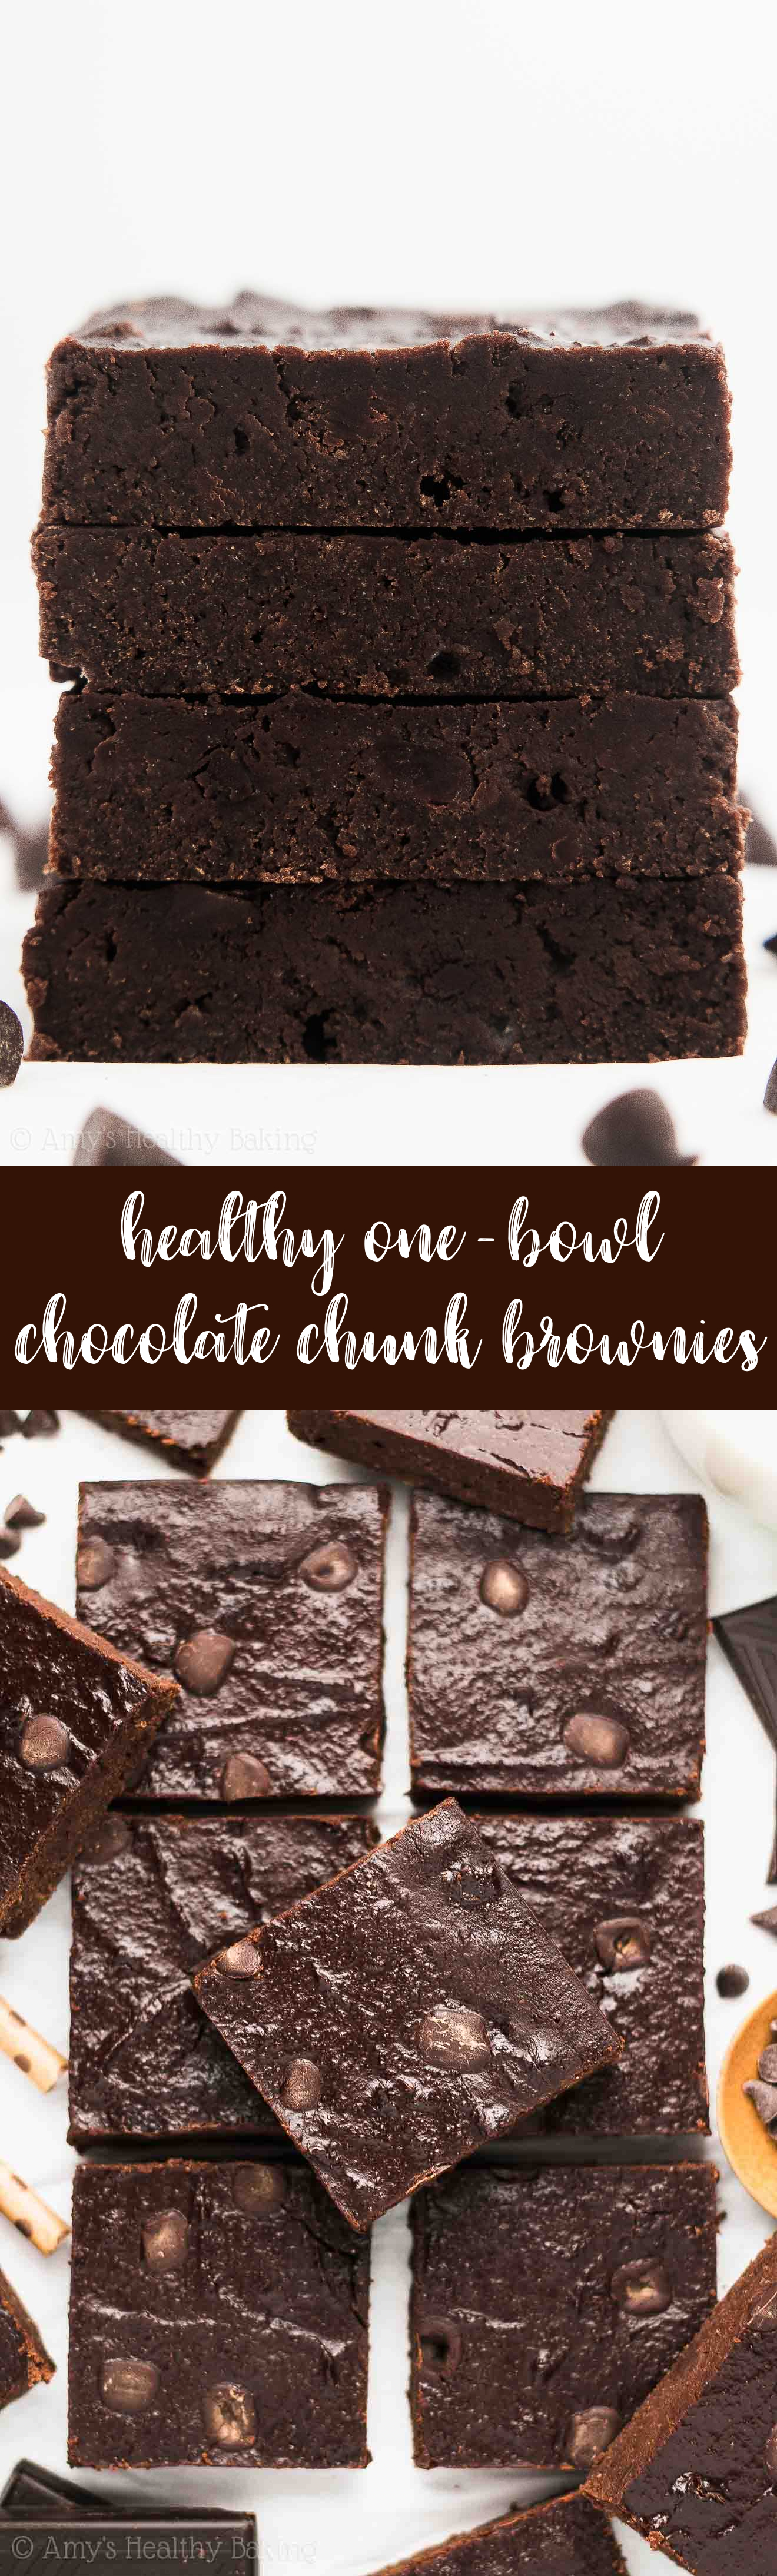 The Best Fudgy and Healthy One-Bowl Chocolate Chunk Brownies